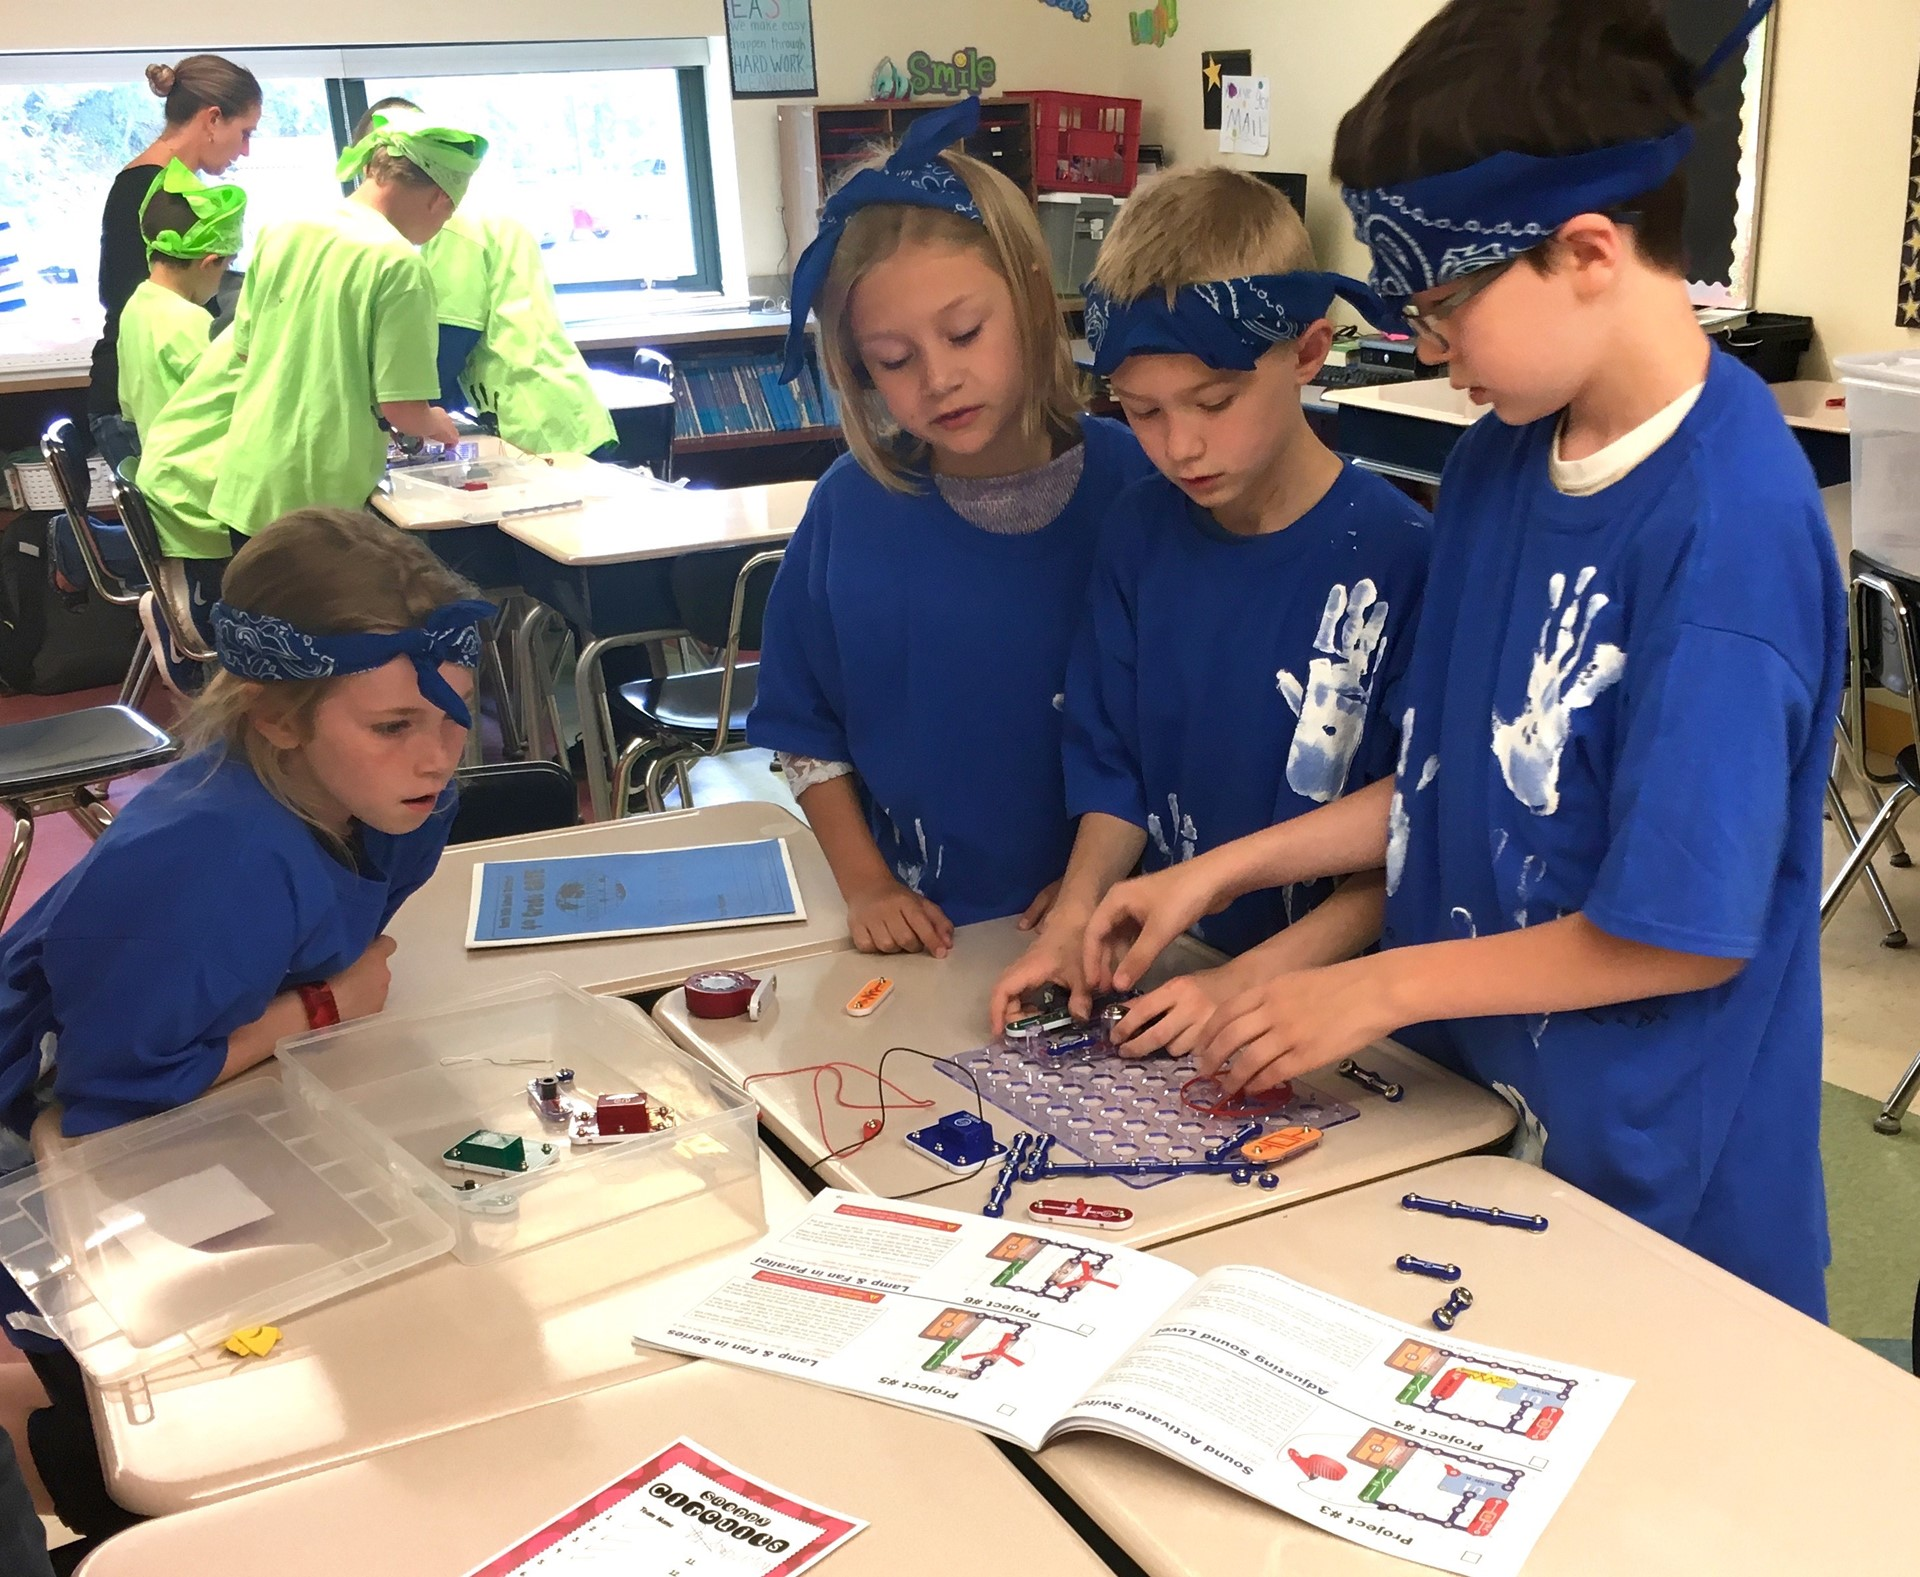 Science Olympiad group activities